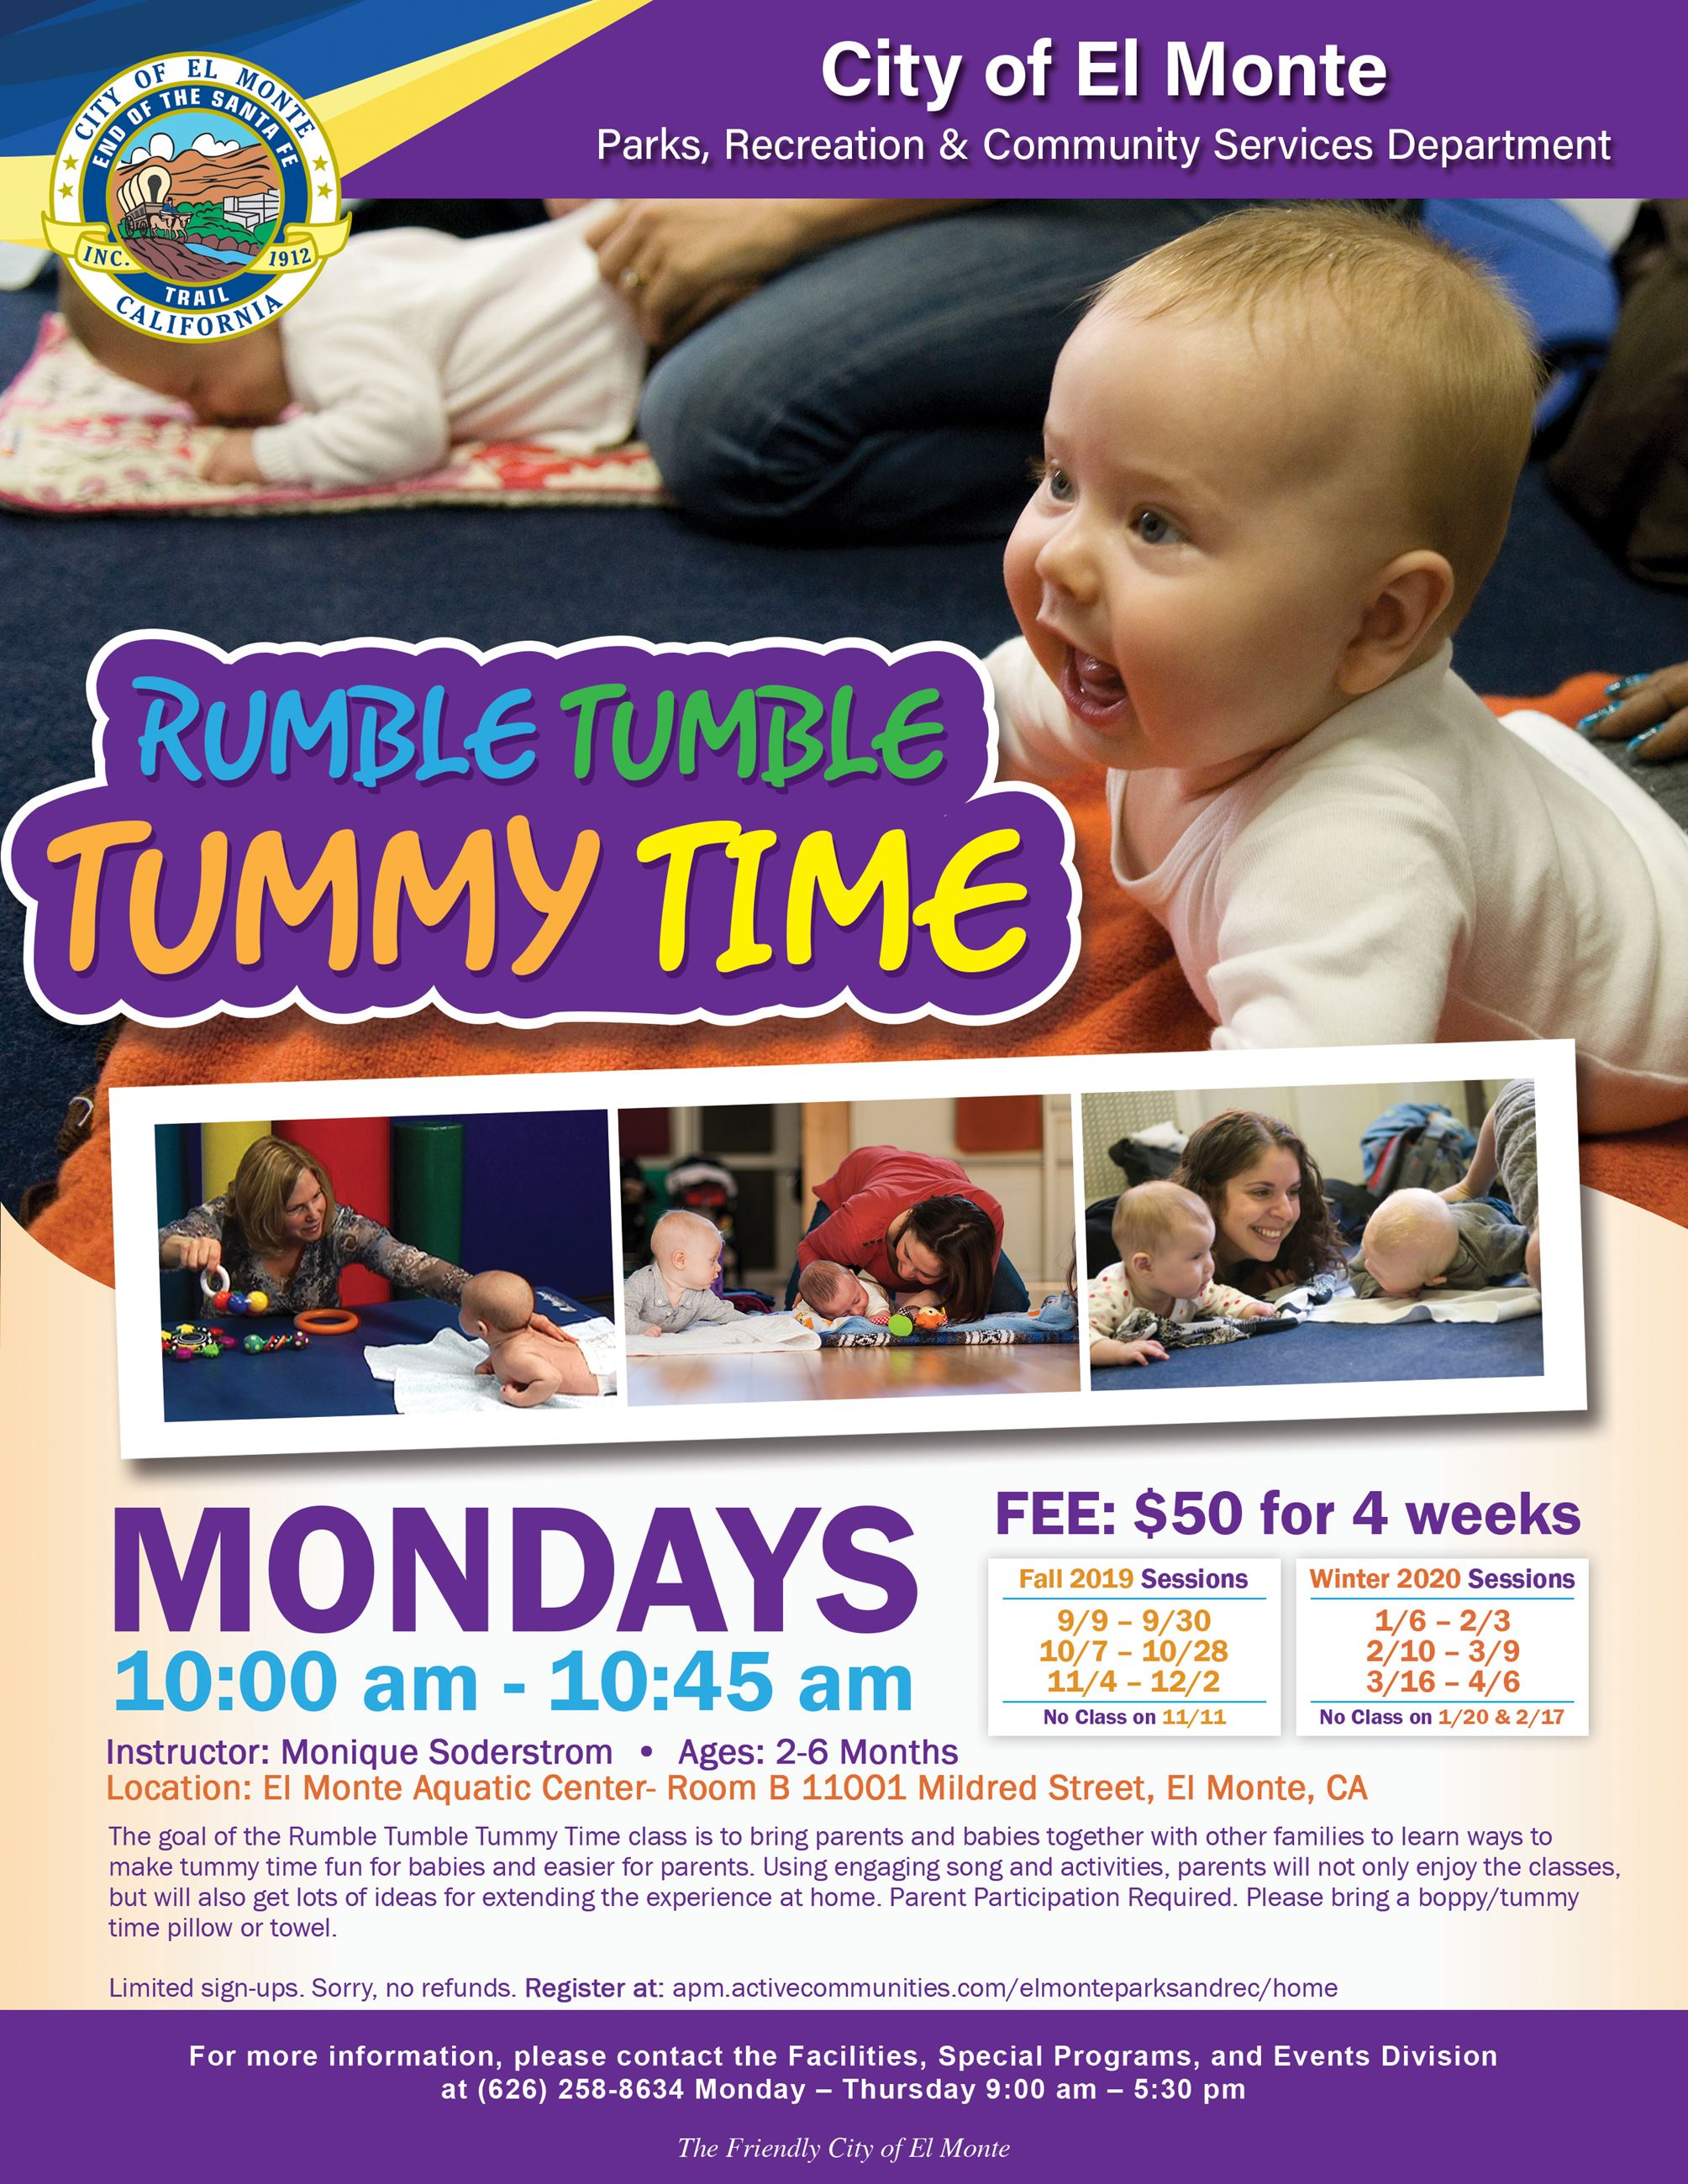 Rumble Tumble Tummy Time flyer 2019 - 081319_edit 05 print